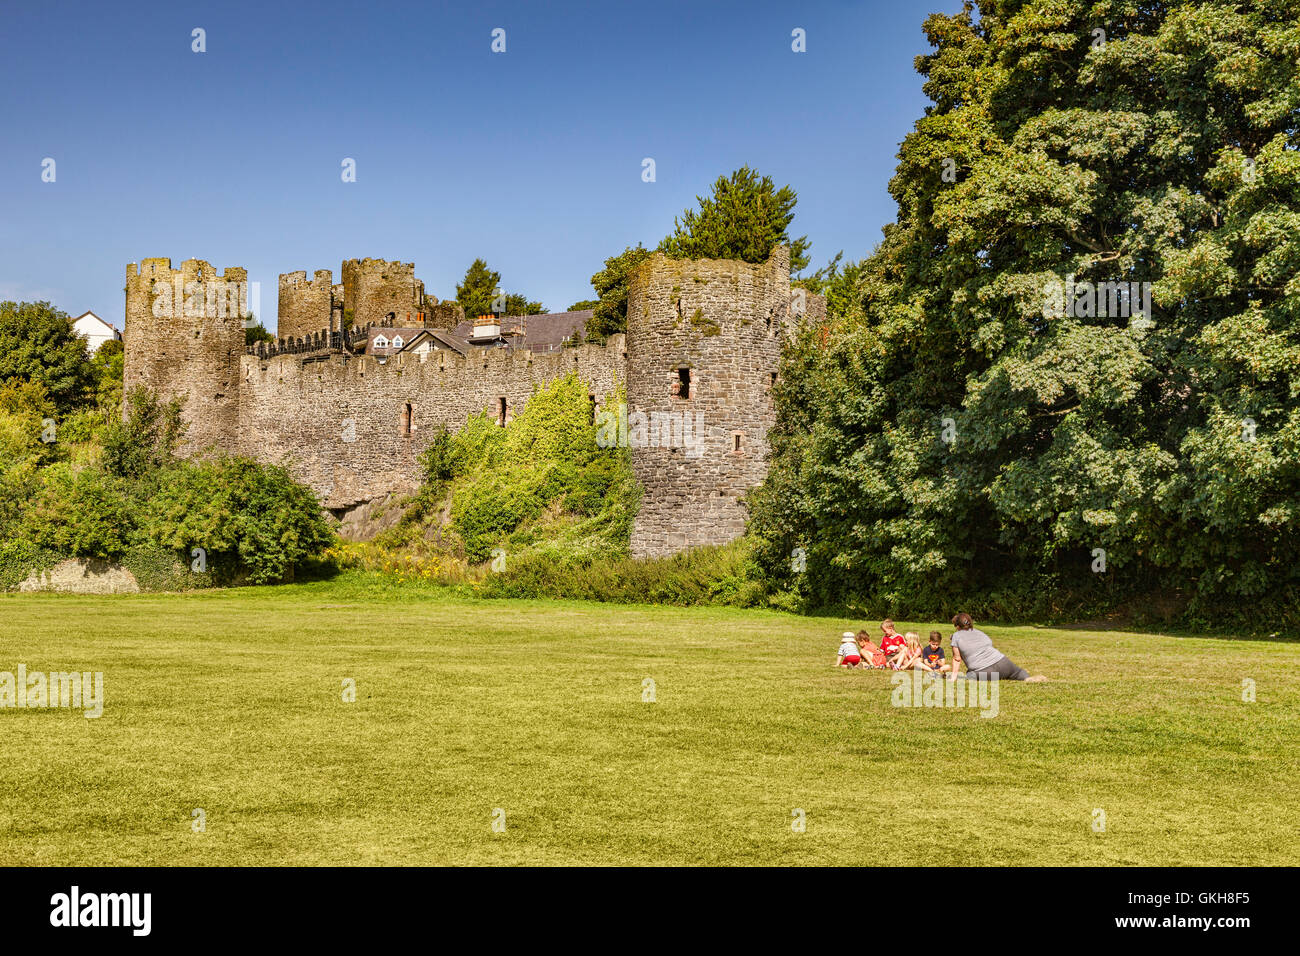 The medieval town walls of Conwy, Wales, UK - Stock Image